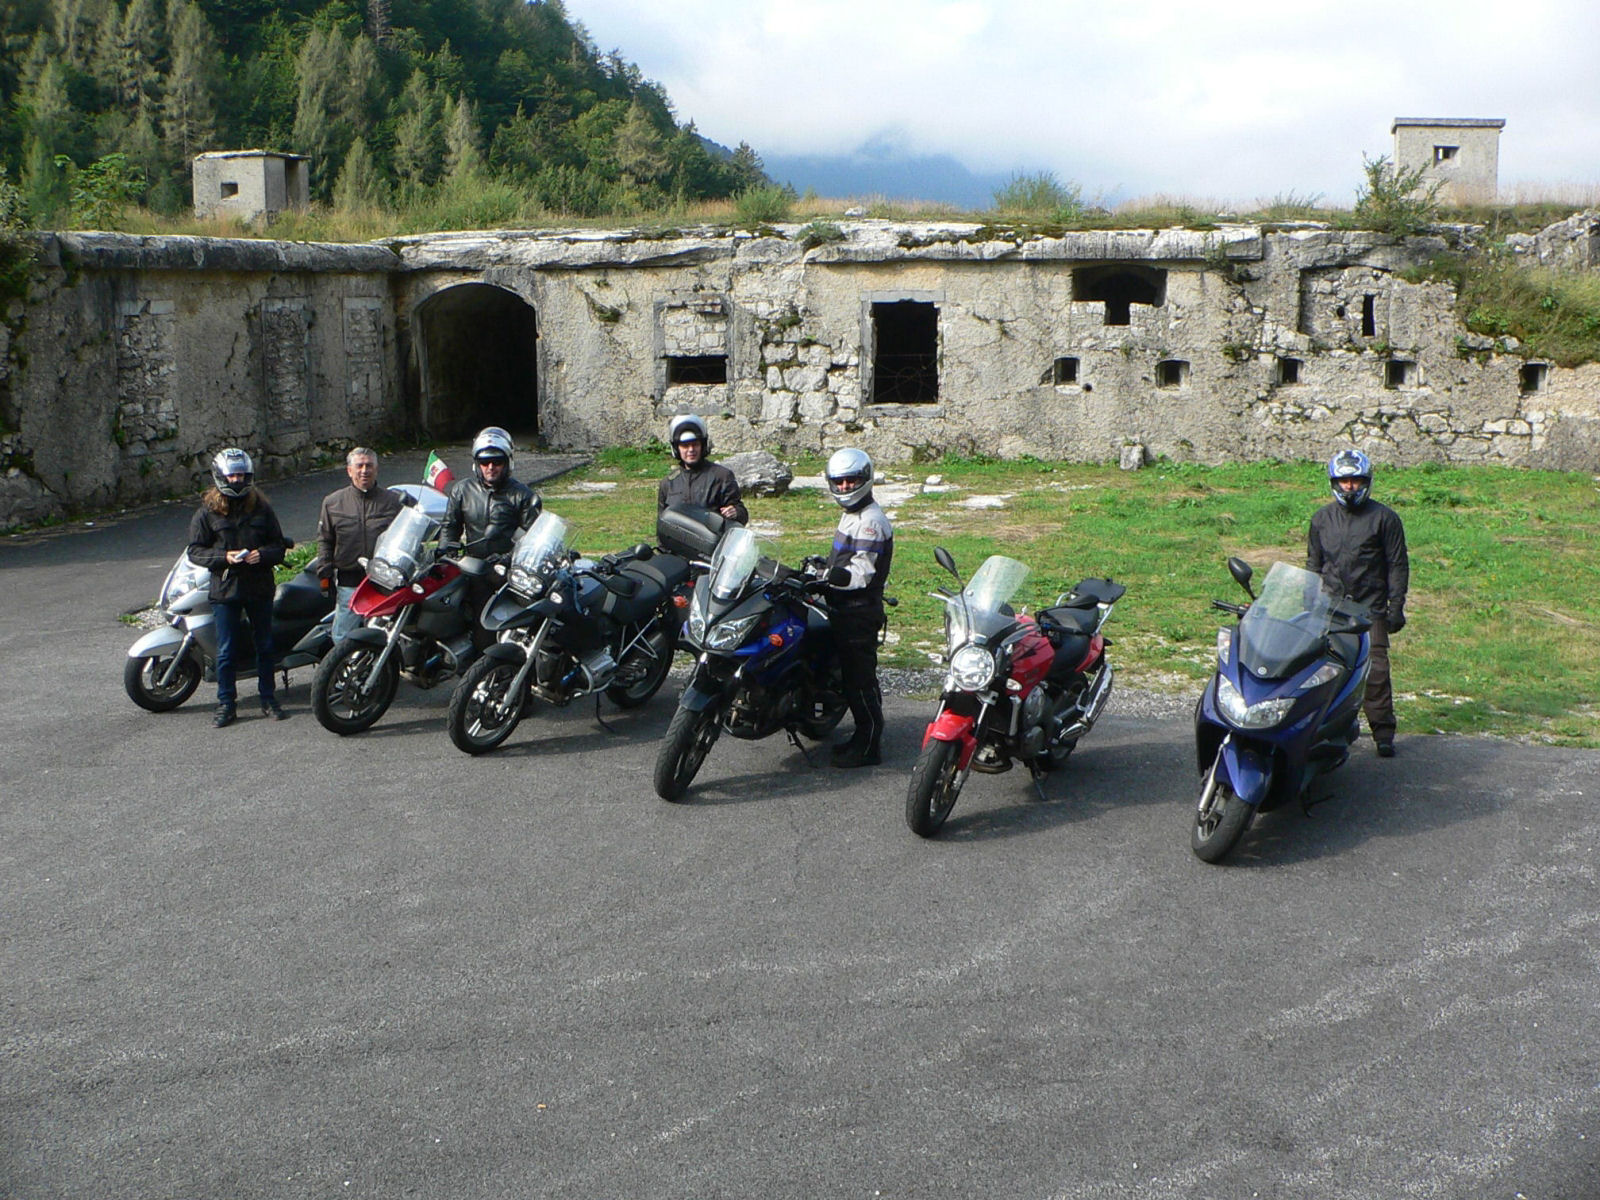 Winding road to the Predil Pass is very popular among motorcyclists